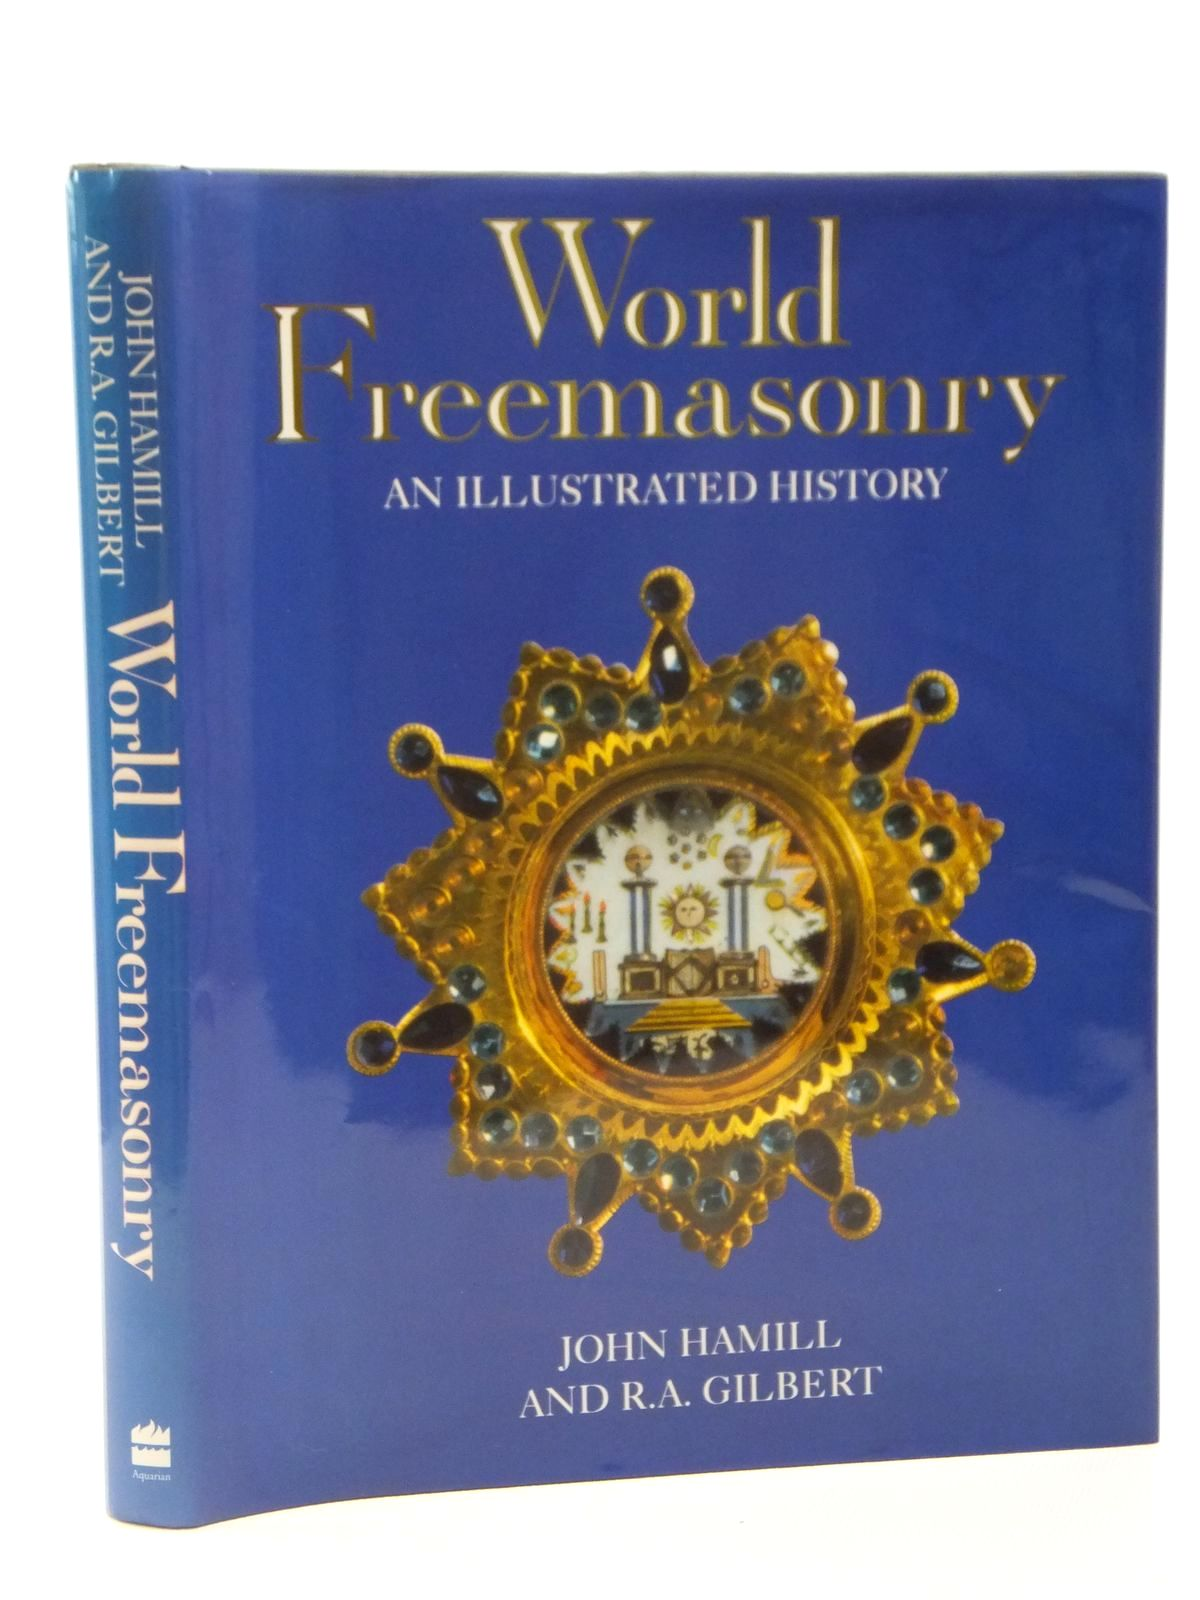 Photo of WORLD FREEMASONRY AN ILLUSTRATED HISTORY written by Hamill, John Gilbert, R.A. published by Aquarian Thorsons (STOCK CODE: 2122280)  for sale by Stella & Rose's Books